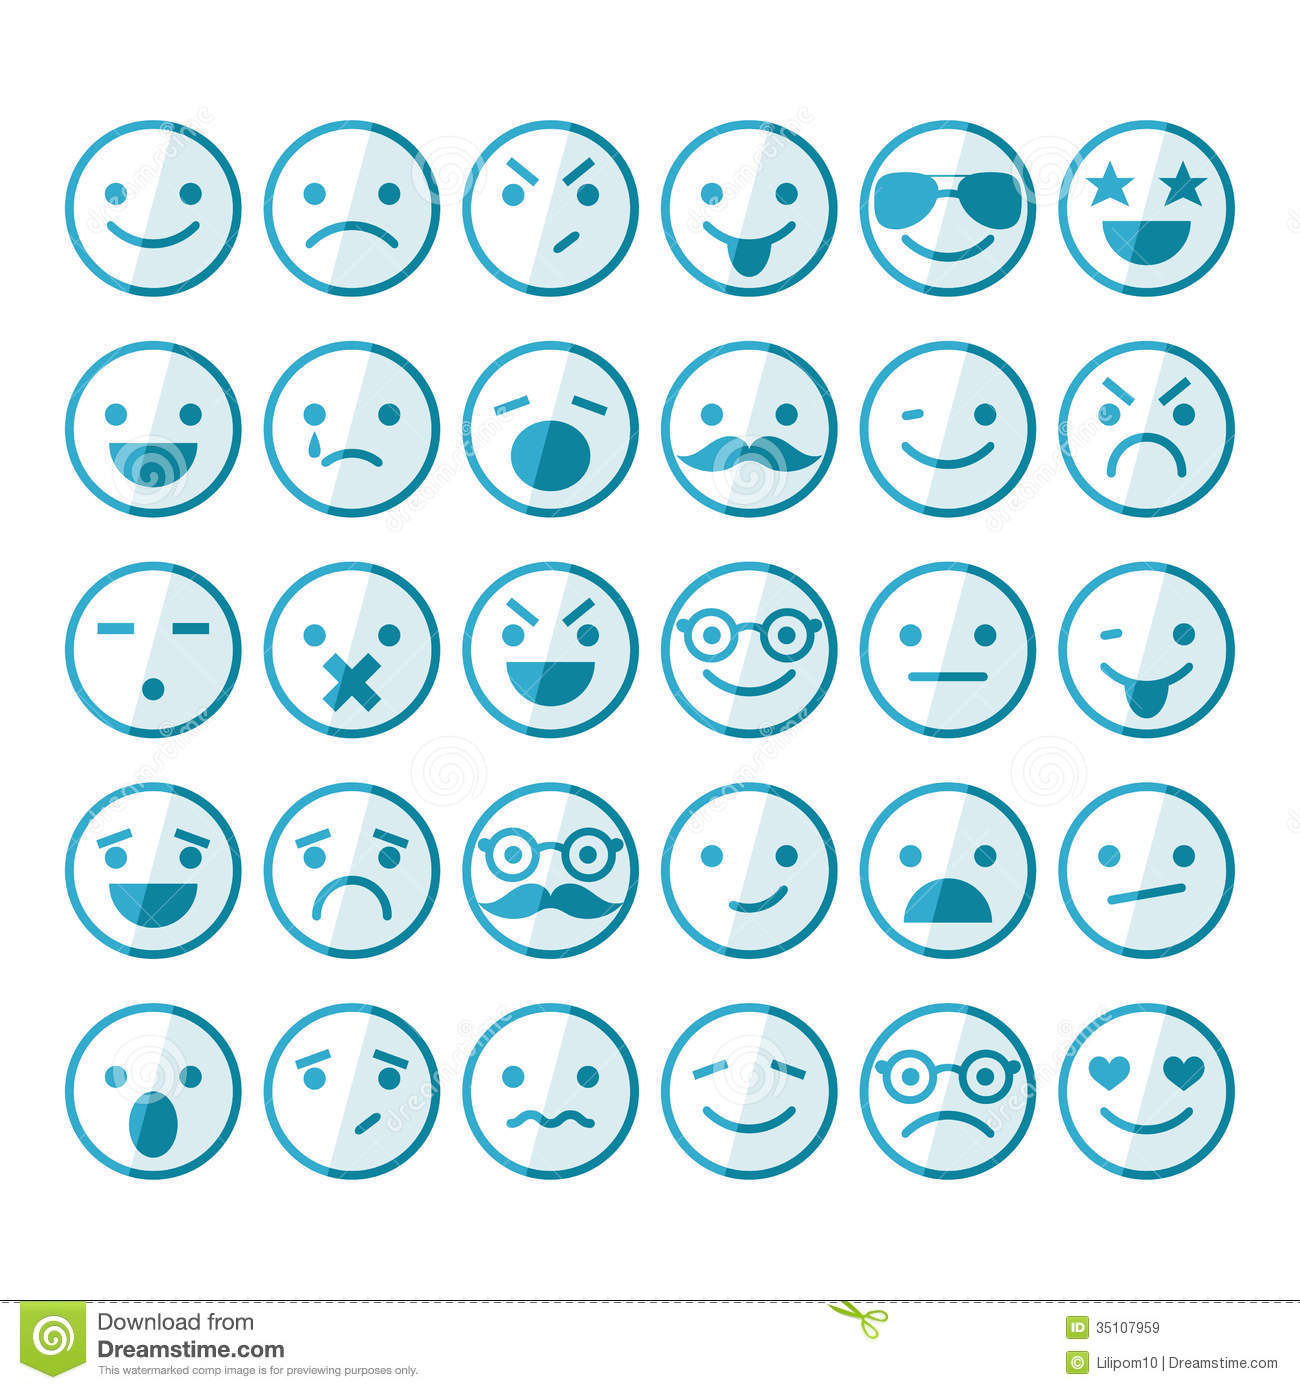 Free Stock Images: Set of smileys in different emotions ...